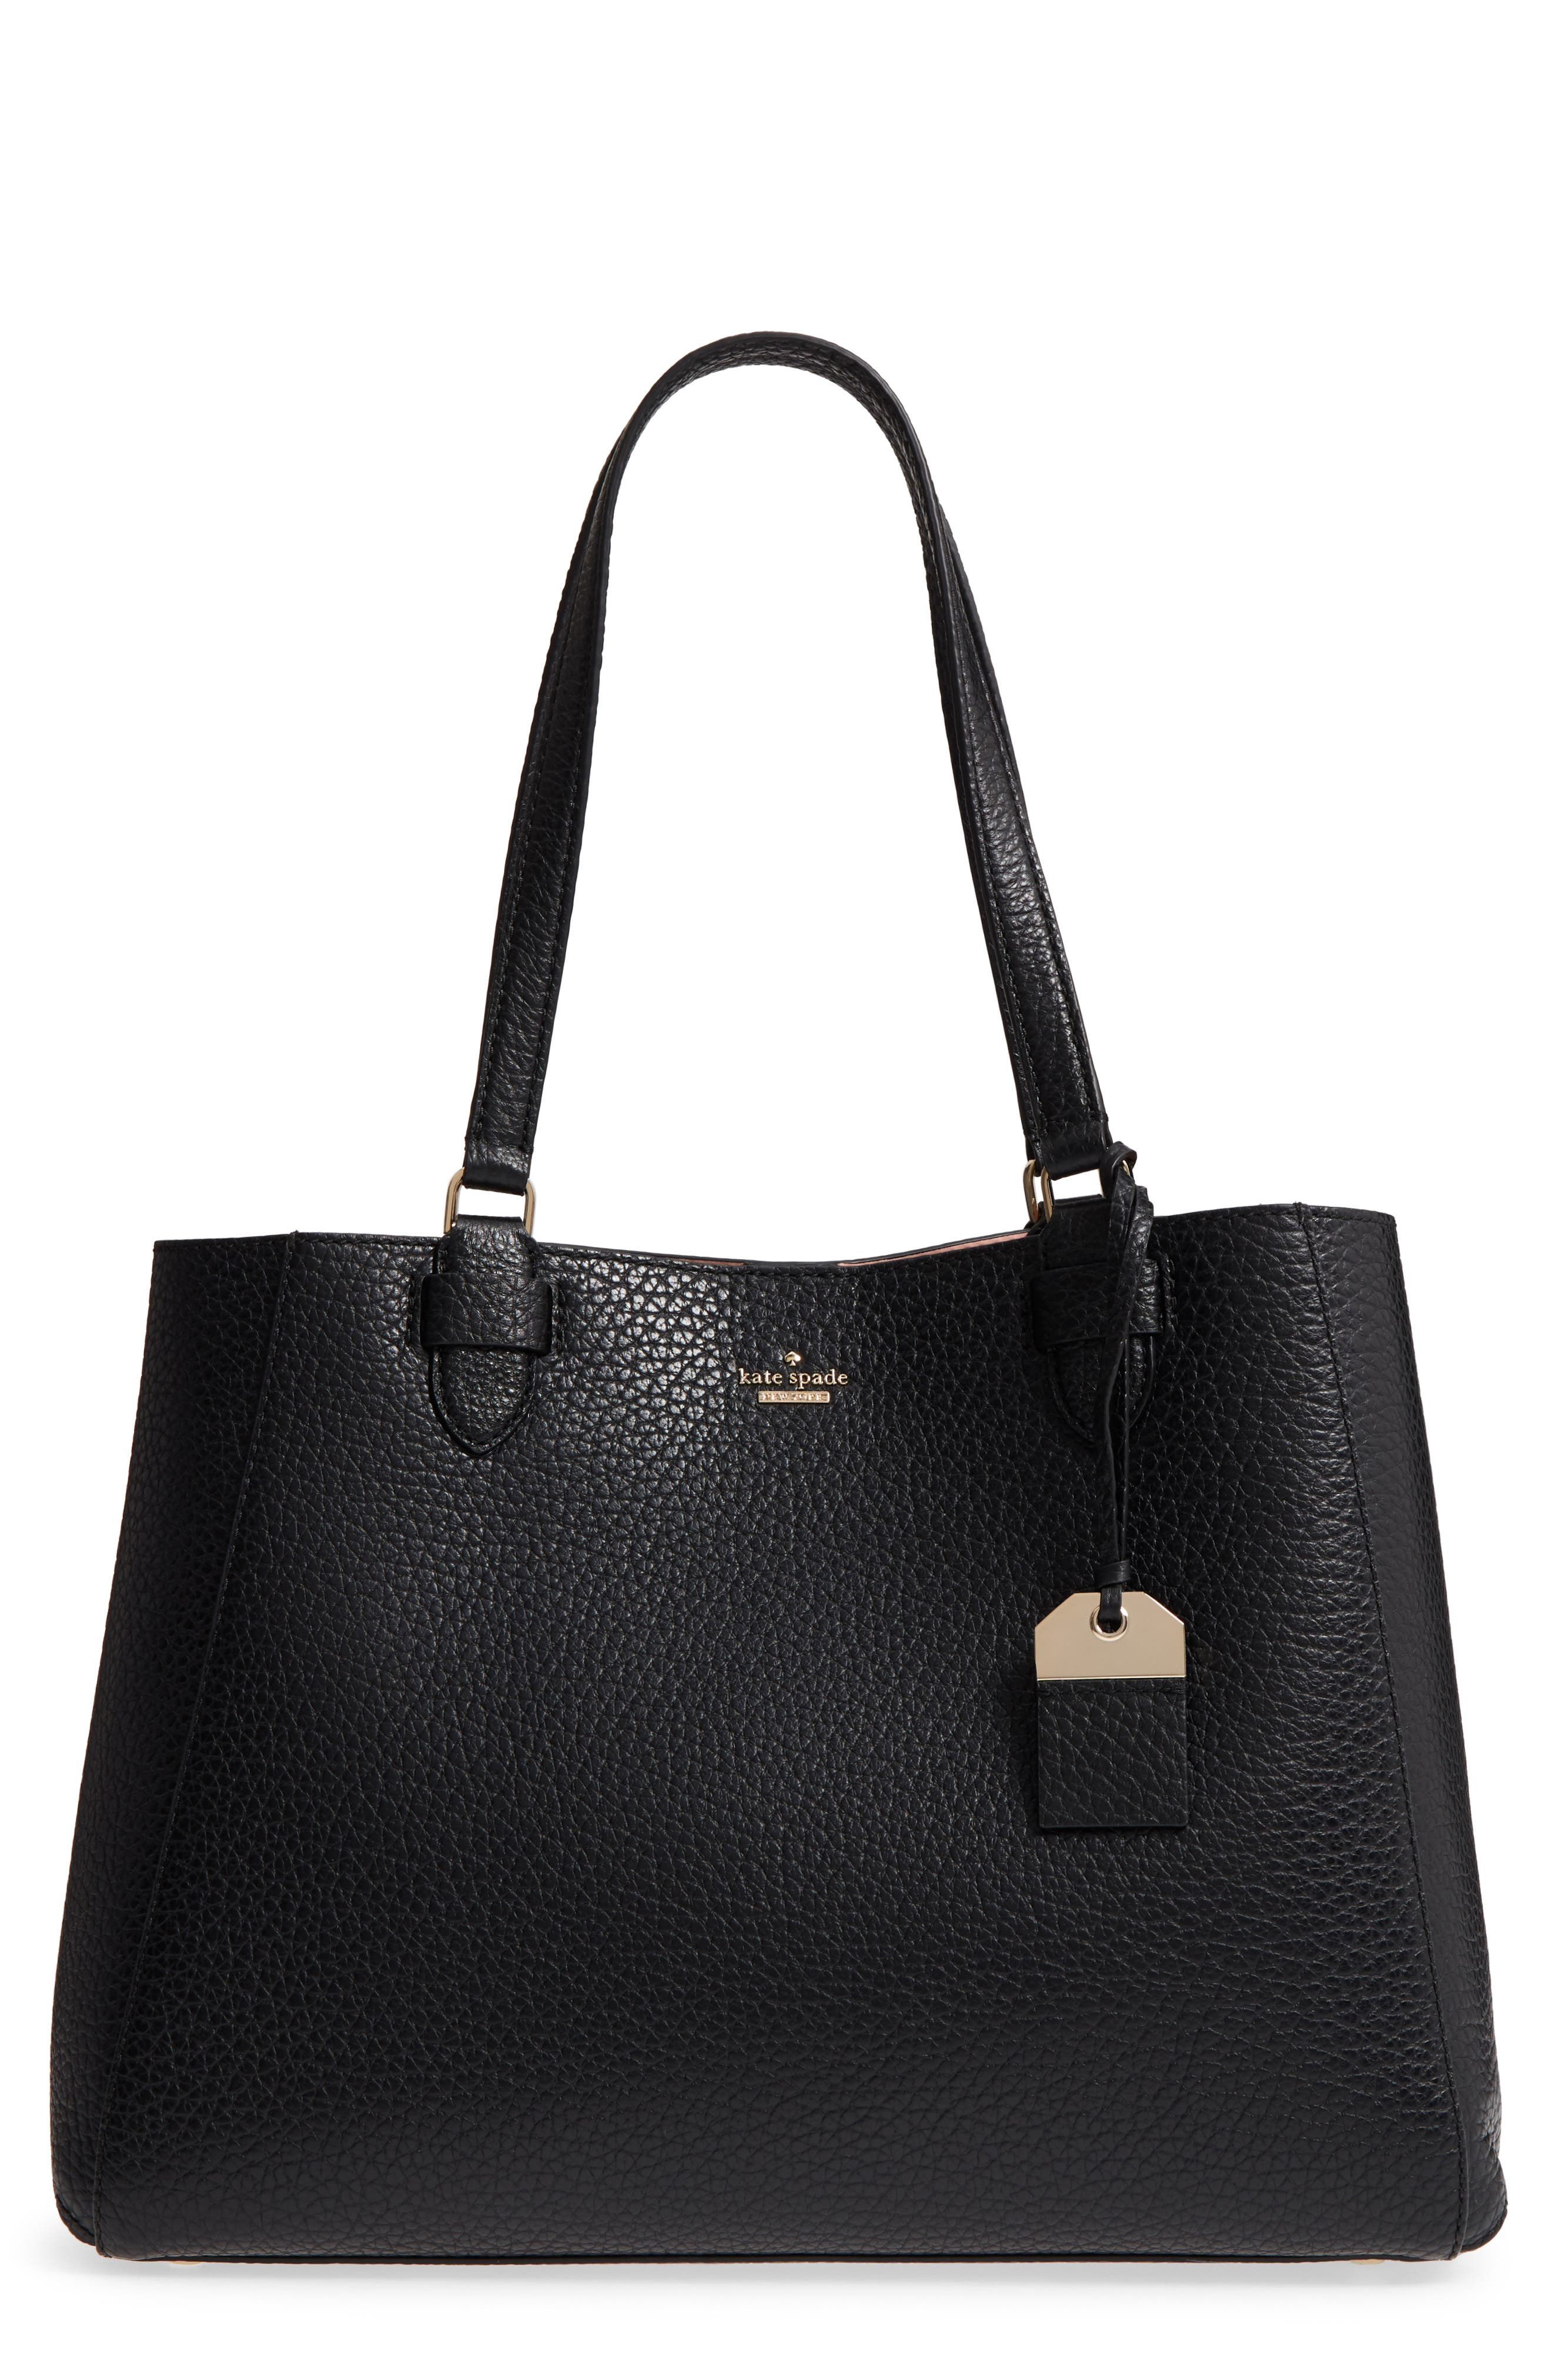 carter street - tyler leather tote,                             Main thumbnail 1, color,                             Black